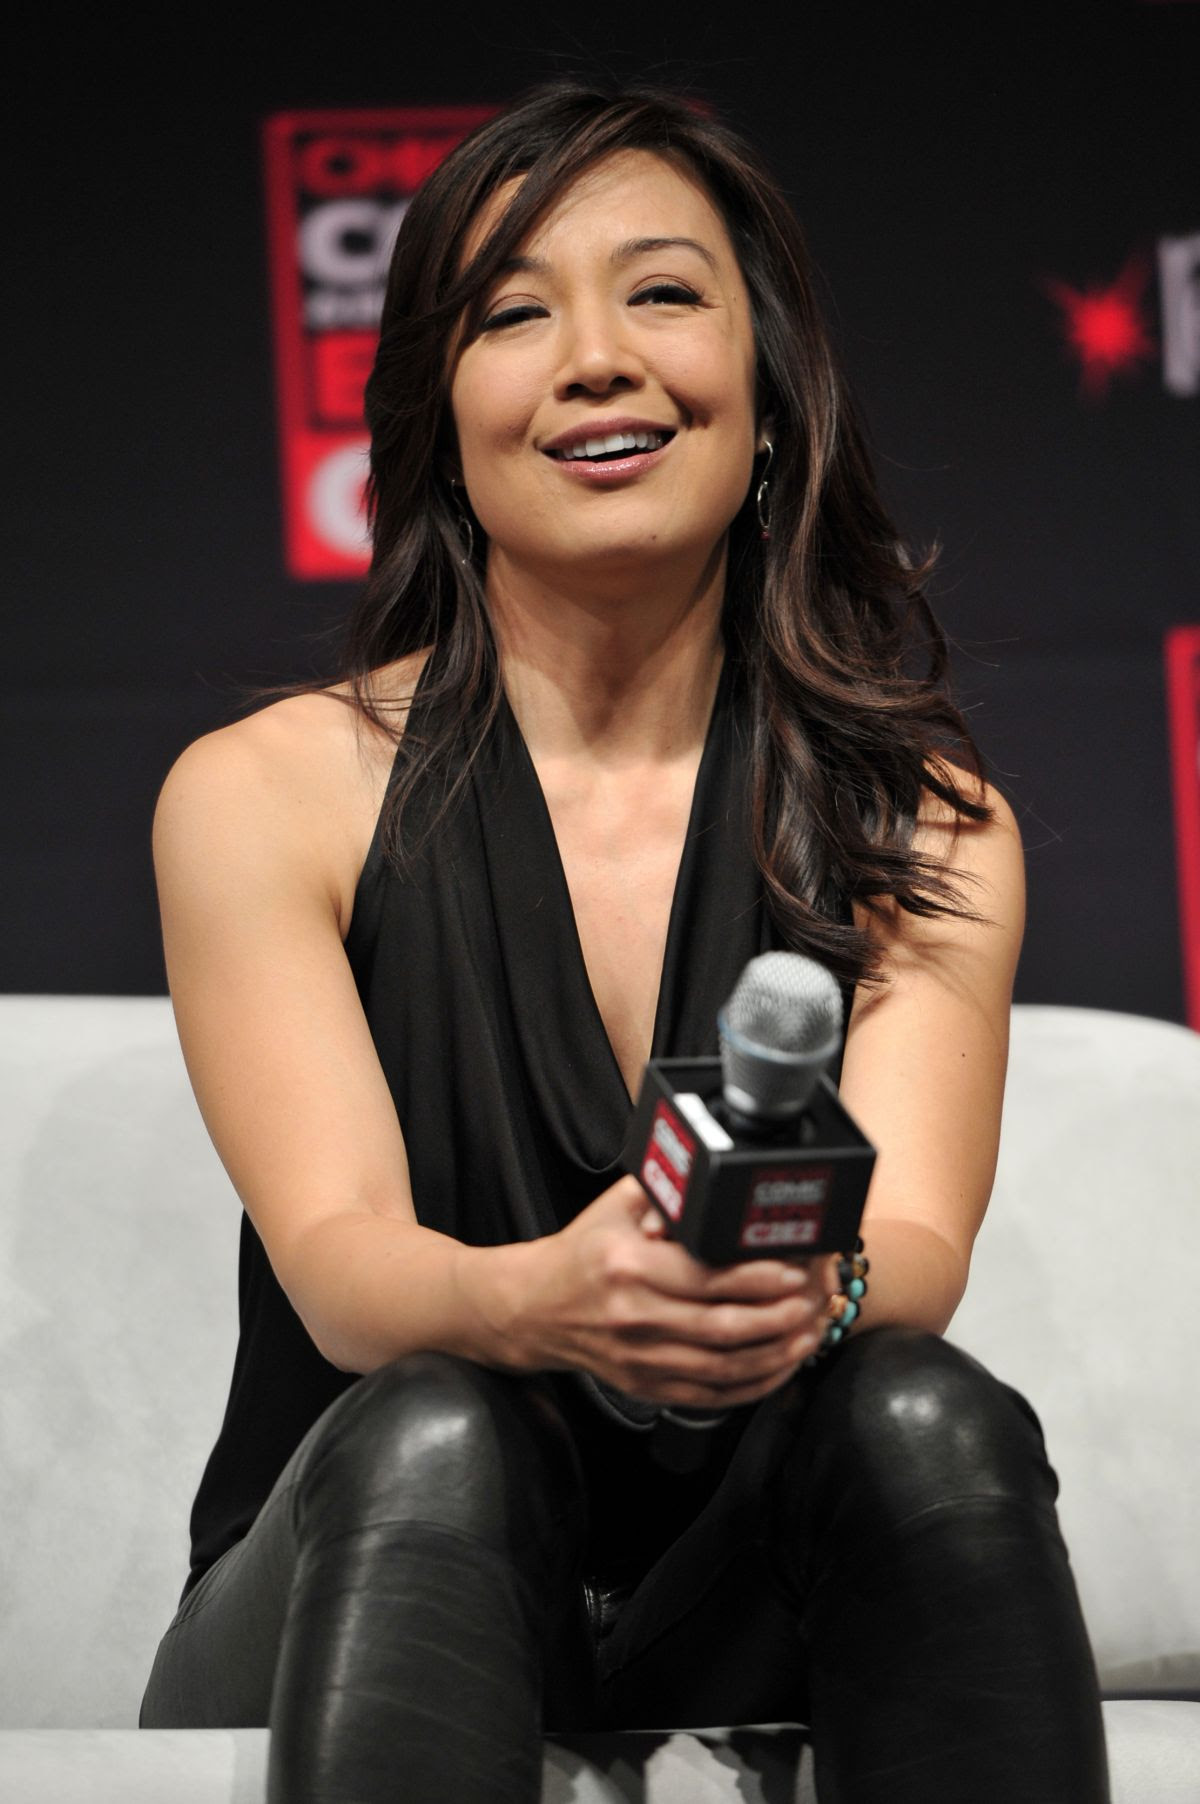 MING-NA WEN at Chicago Comic and Entertainment Expo